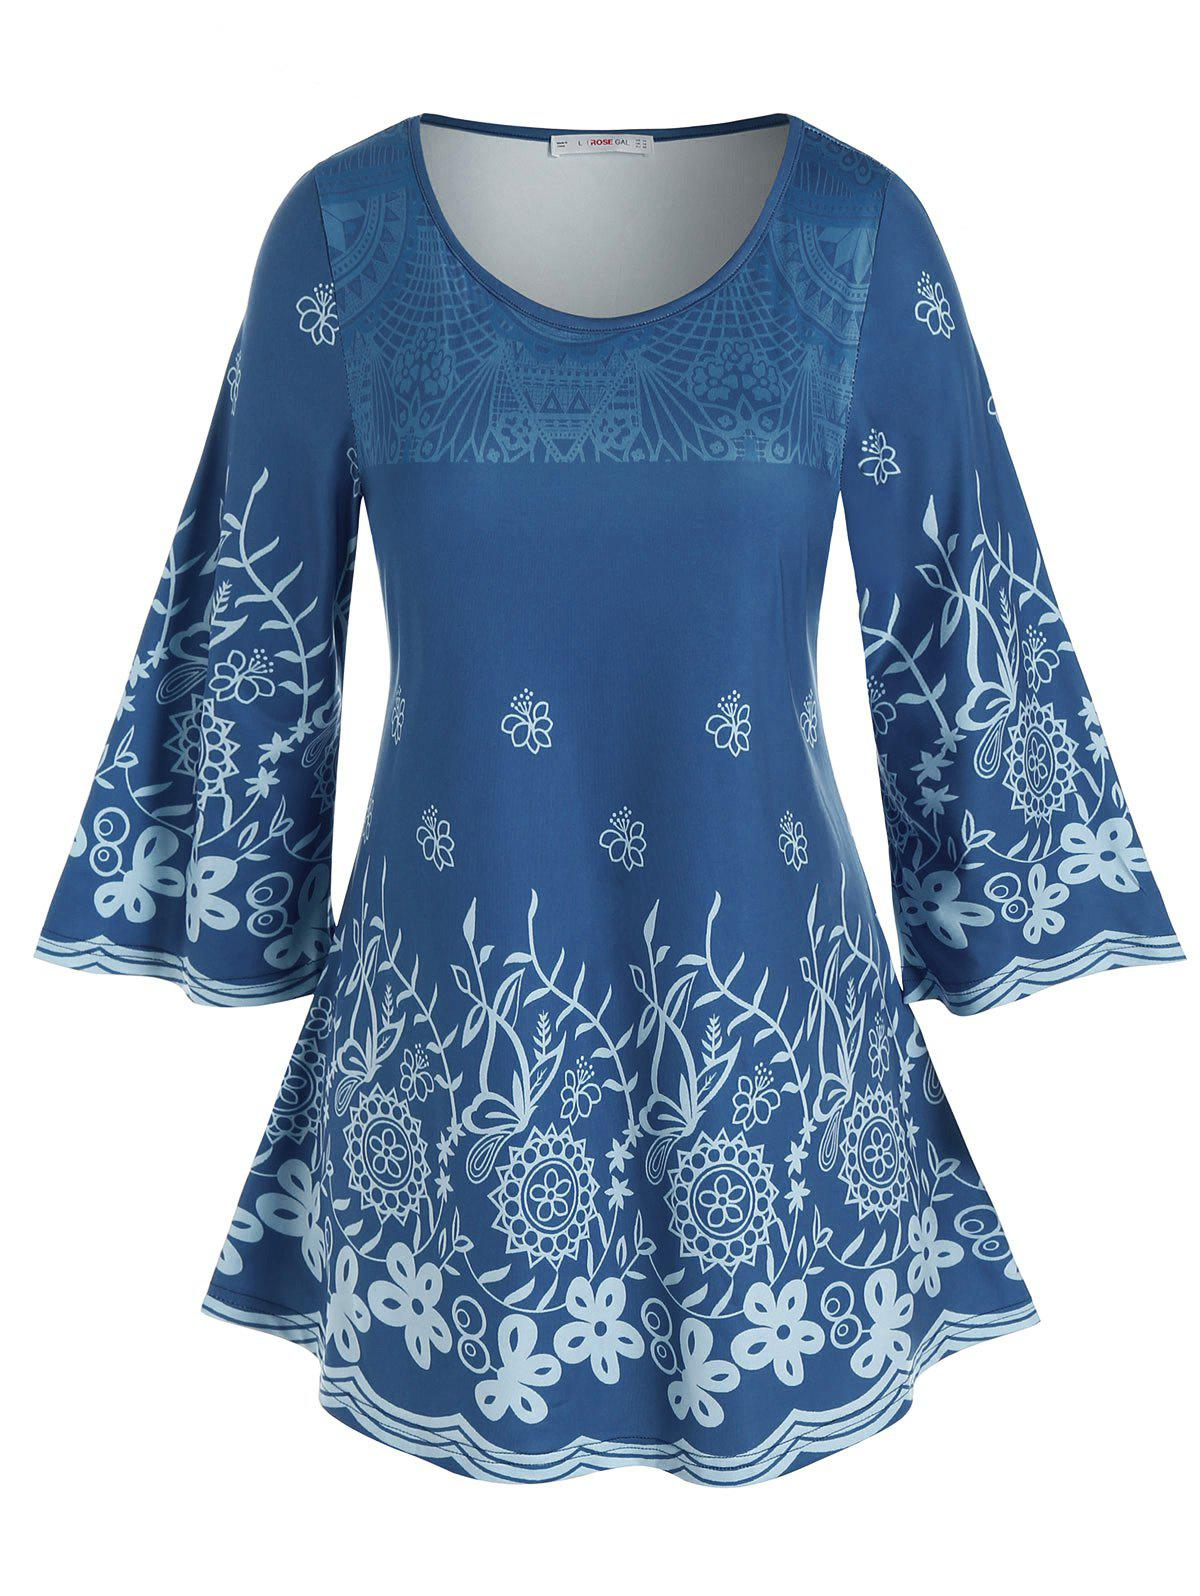 Plus Size Flower Patterned Casual Tunic Tee - BLUE L